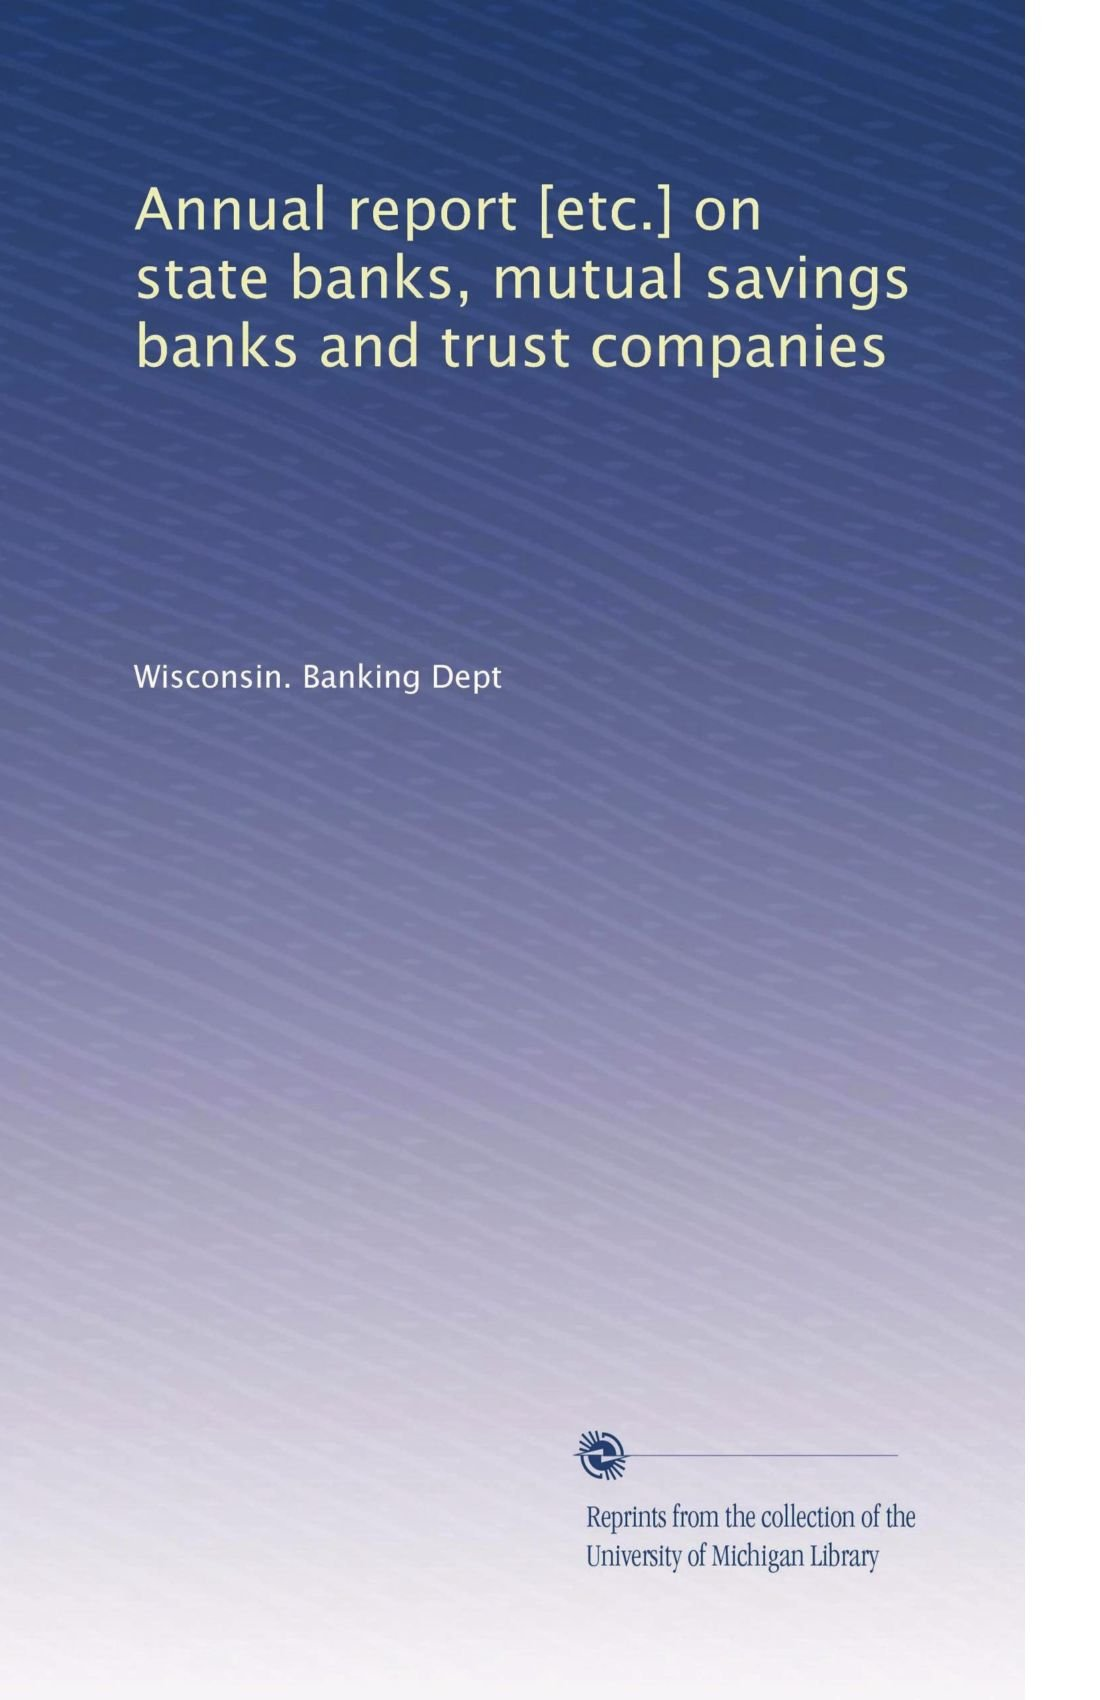 Download Annual report [etc.] on state banks, mutual savings banks and trust companies (Volume 9) ebook